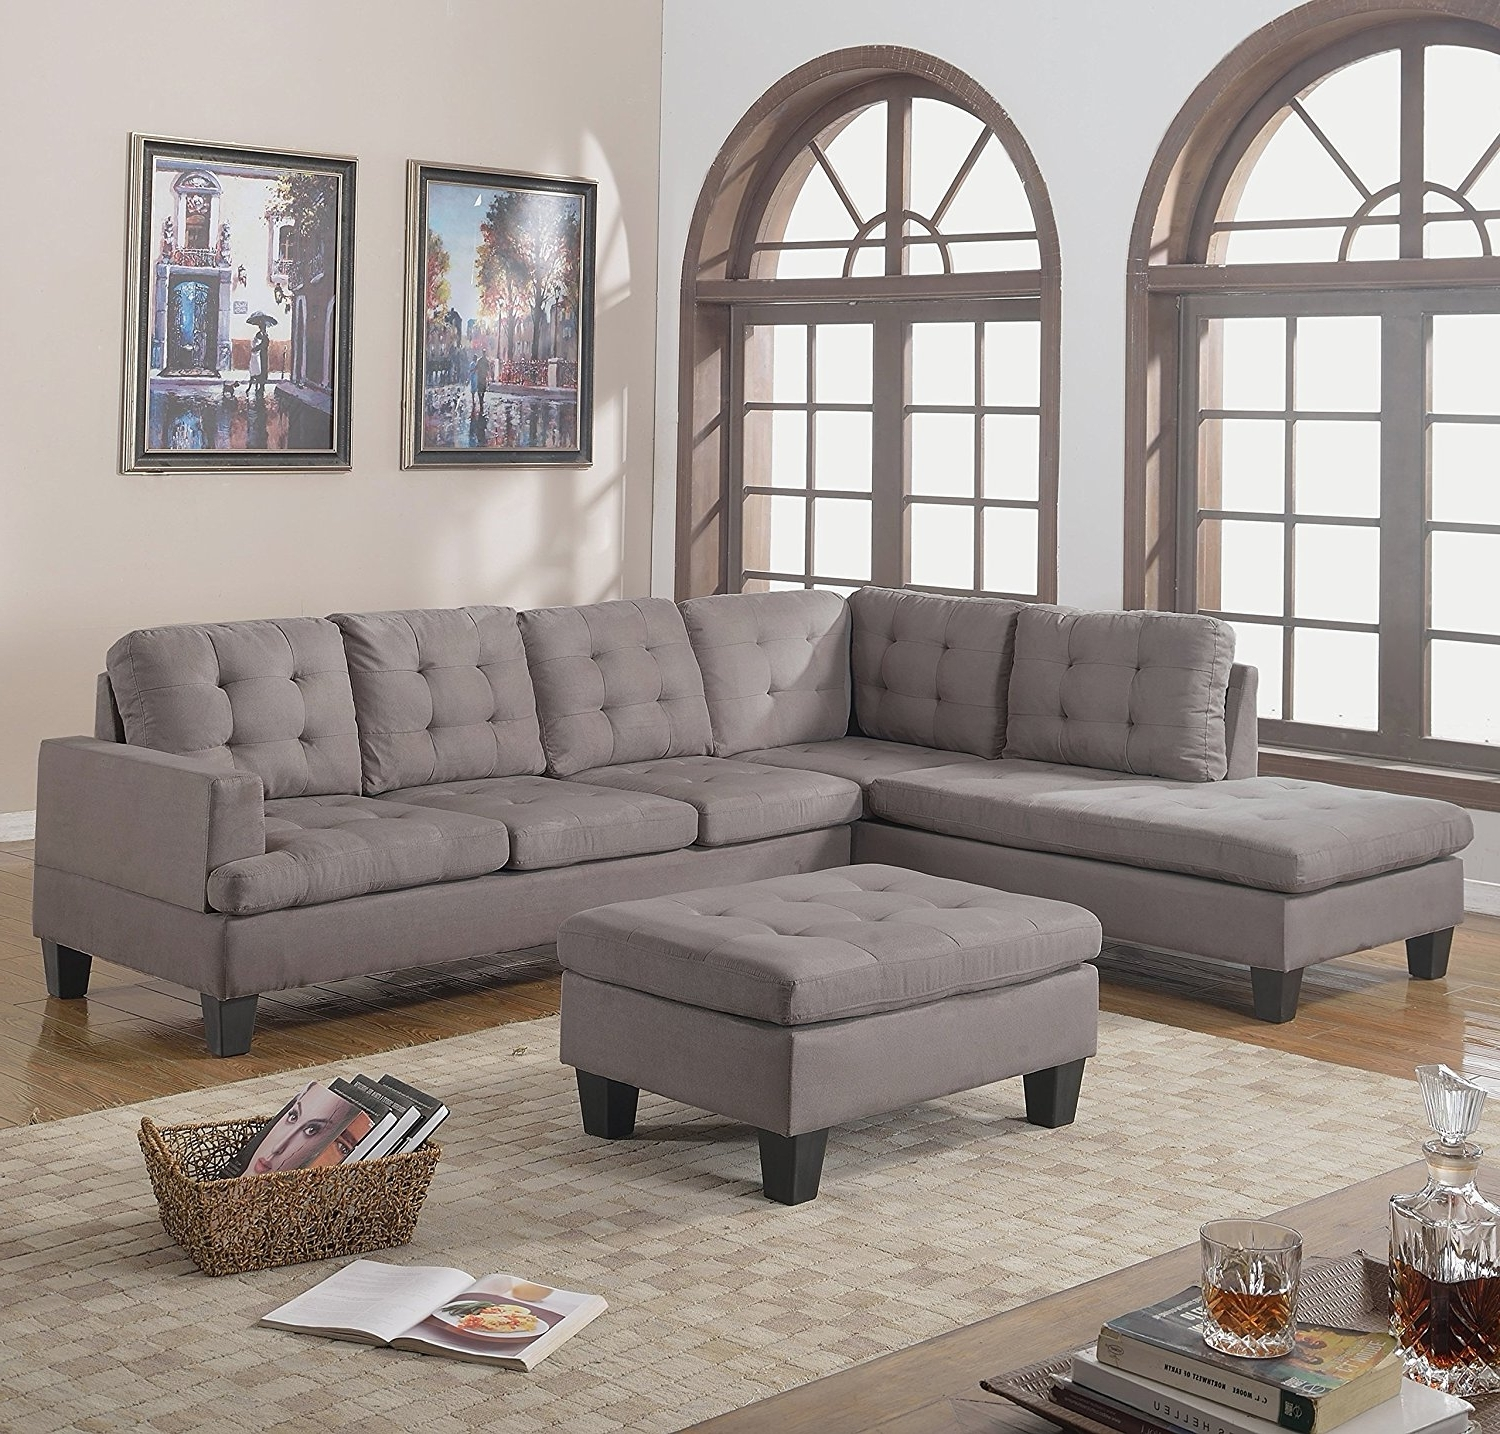 Kansas City Mo Sectional Sofas Pertaining To Widely Used Furniture : American Furniture Warehouse 470 Living Room Furniture (View 6 of 15)